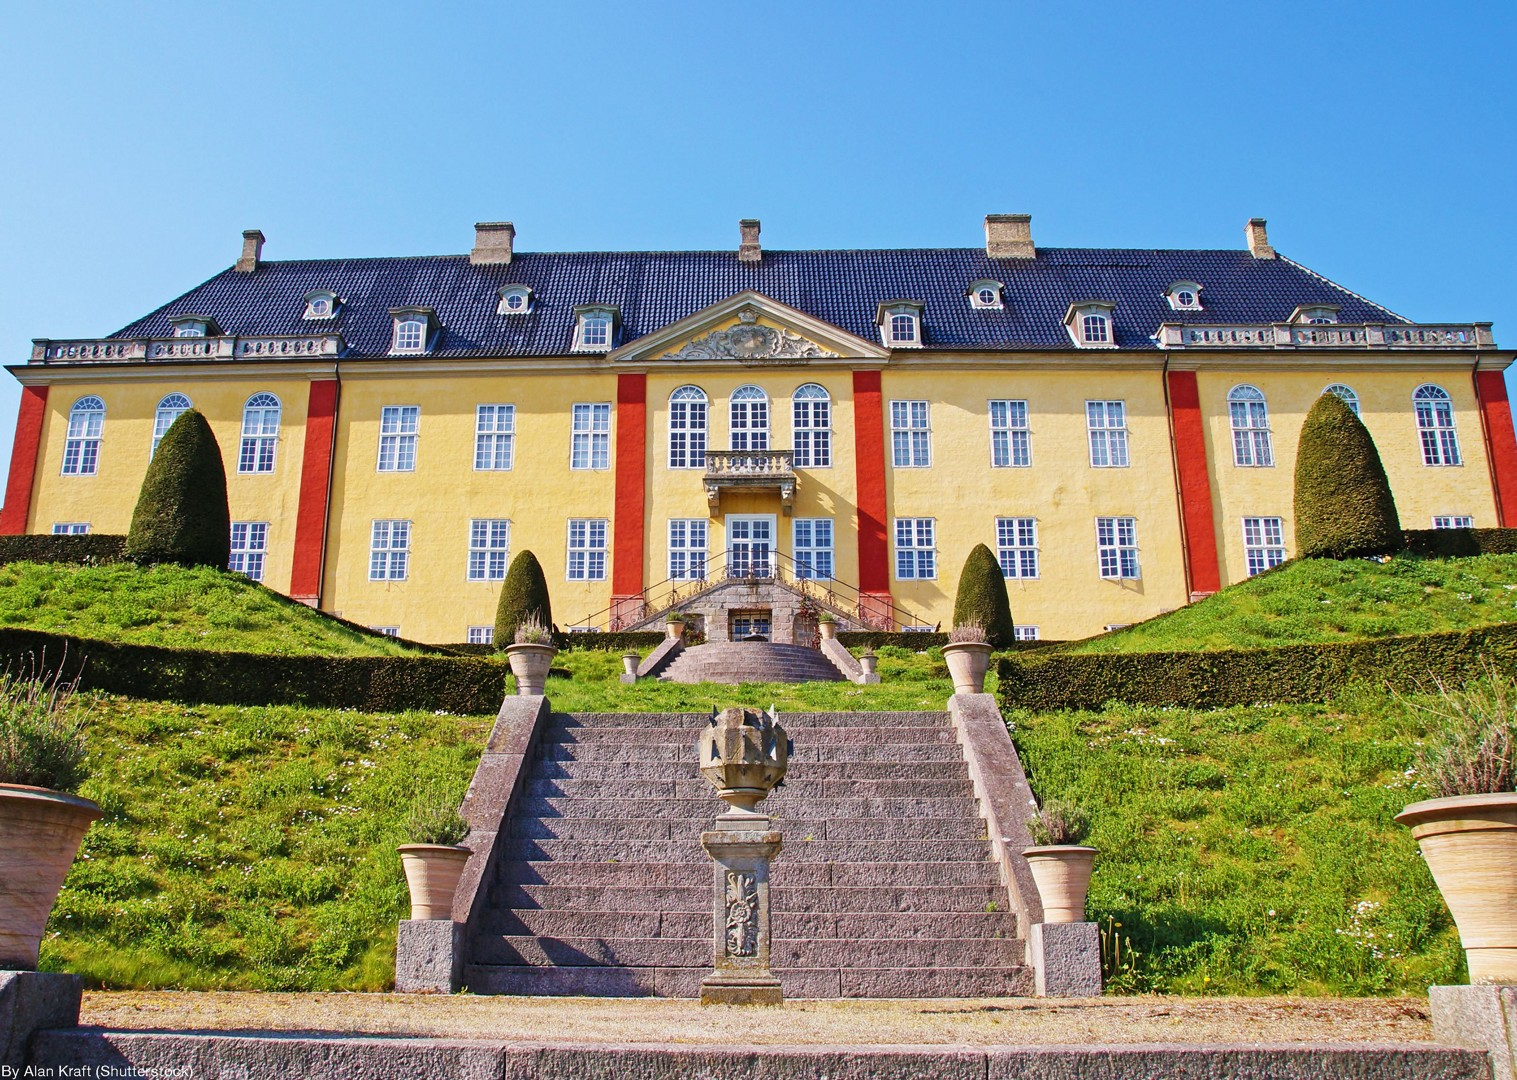 traditional-architecture-of-denmark-cycle-tour-of-country.jpg - Denmark - Coast, Castles and Copenhagen - Self-Guided Leisure Cycling Holiday - Leisure Cycling